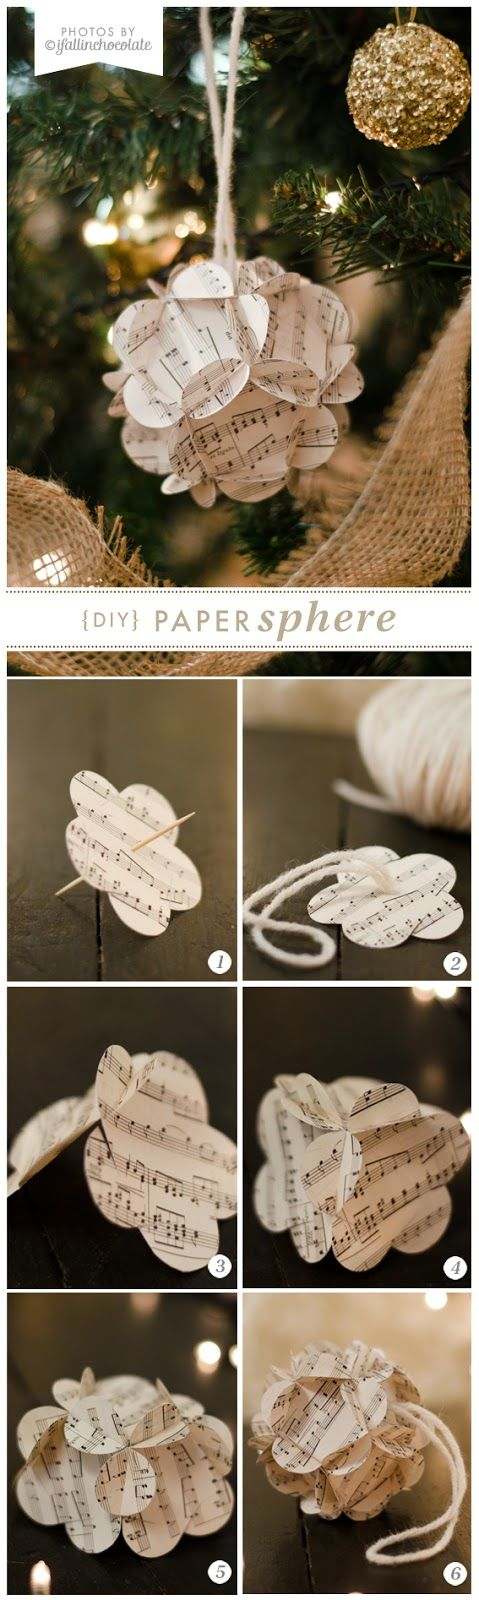 I Fall in Chocolate: DIY PAPER SPHERE